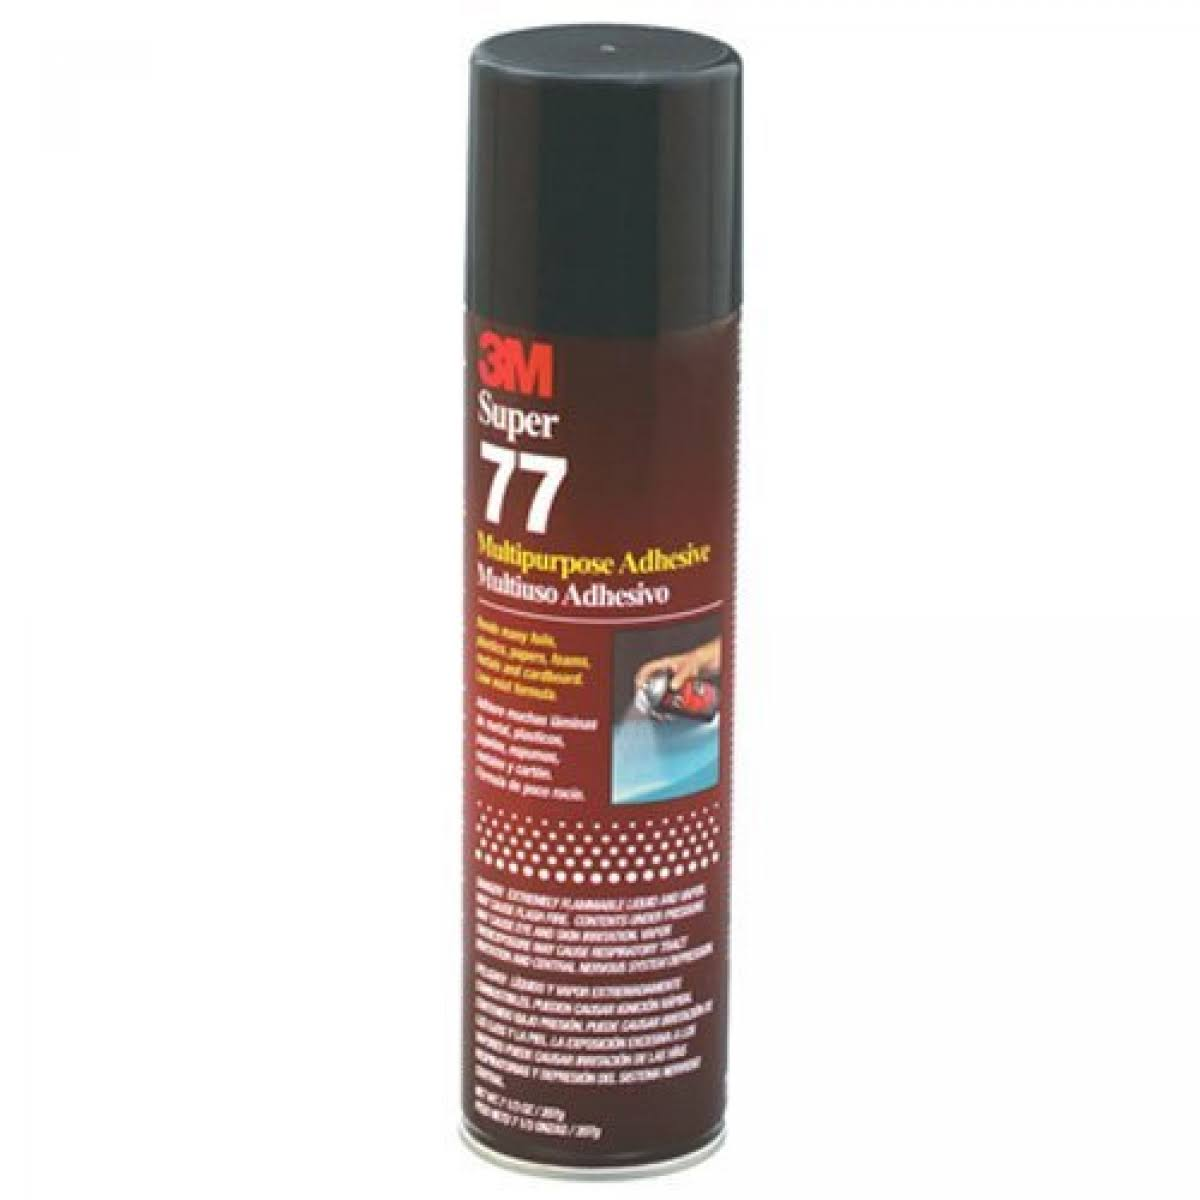 3M Super 77 Multi-Purpose Spray Adhesive - 7oz